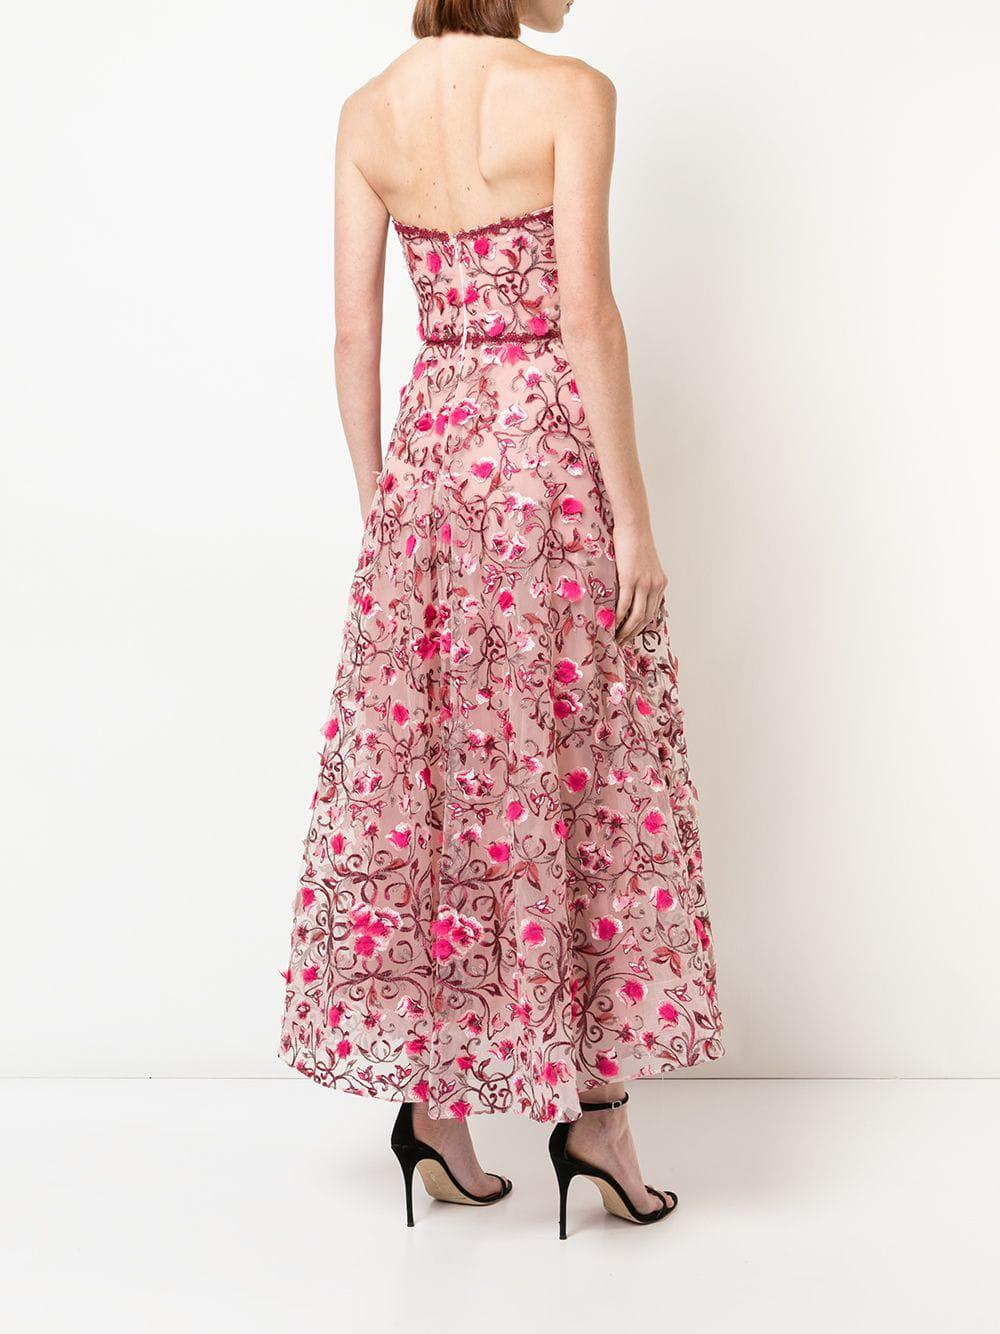 Marchesa Notte Pink Fl Embroidered Dress Lyst View Fullscreen